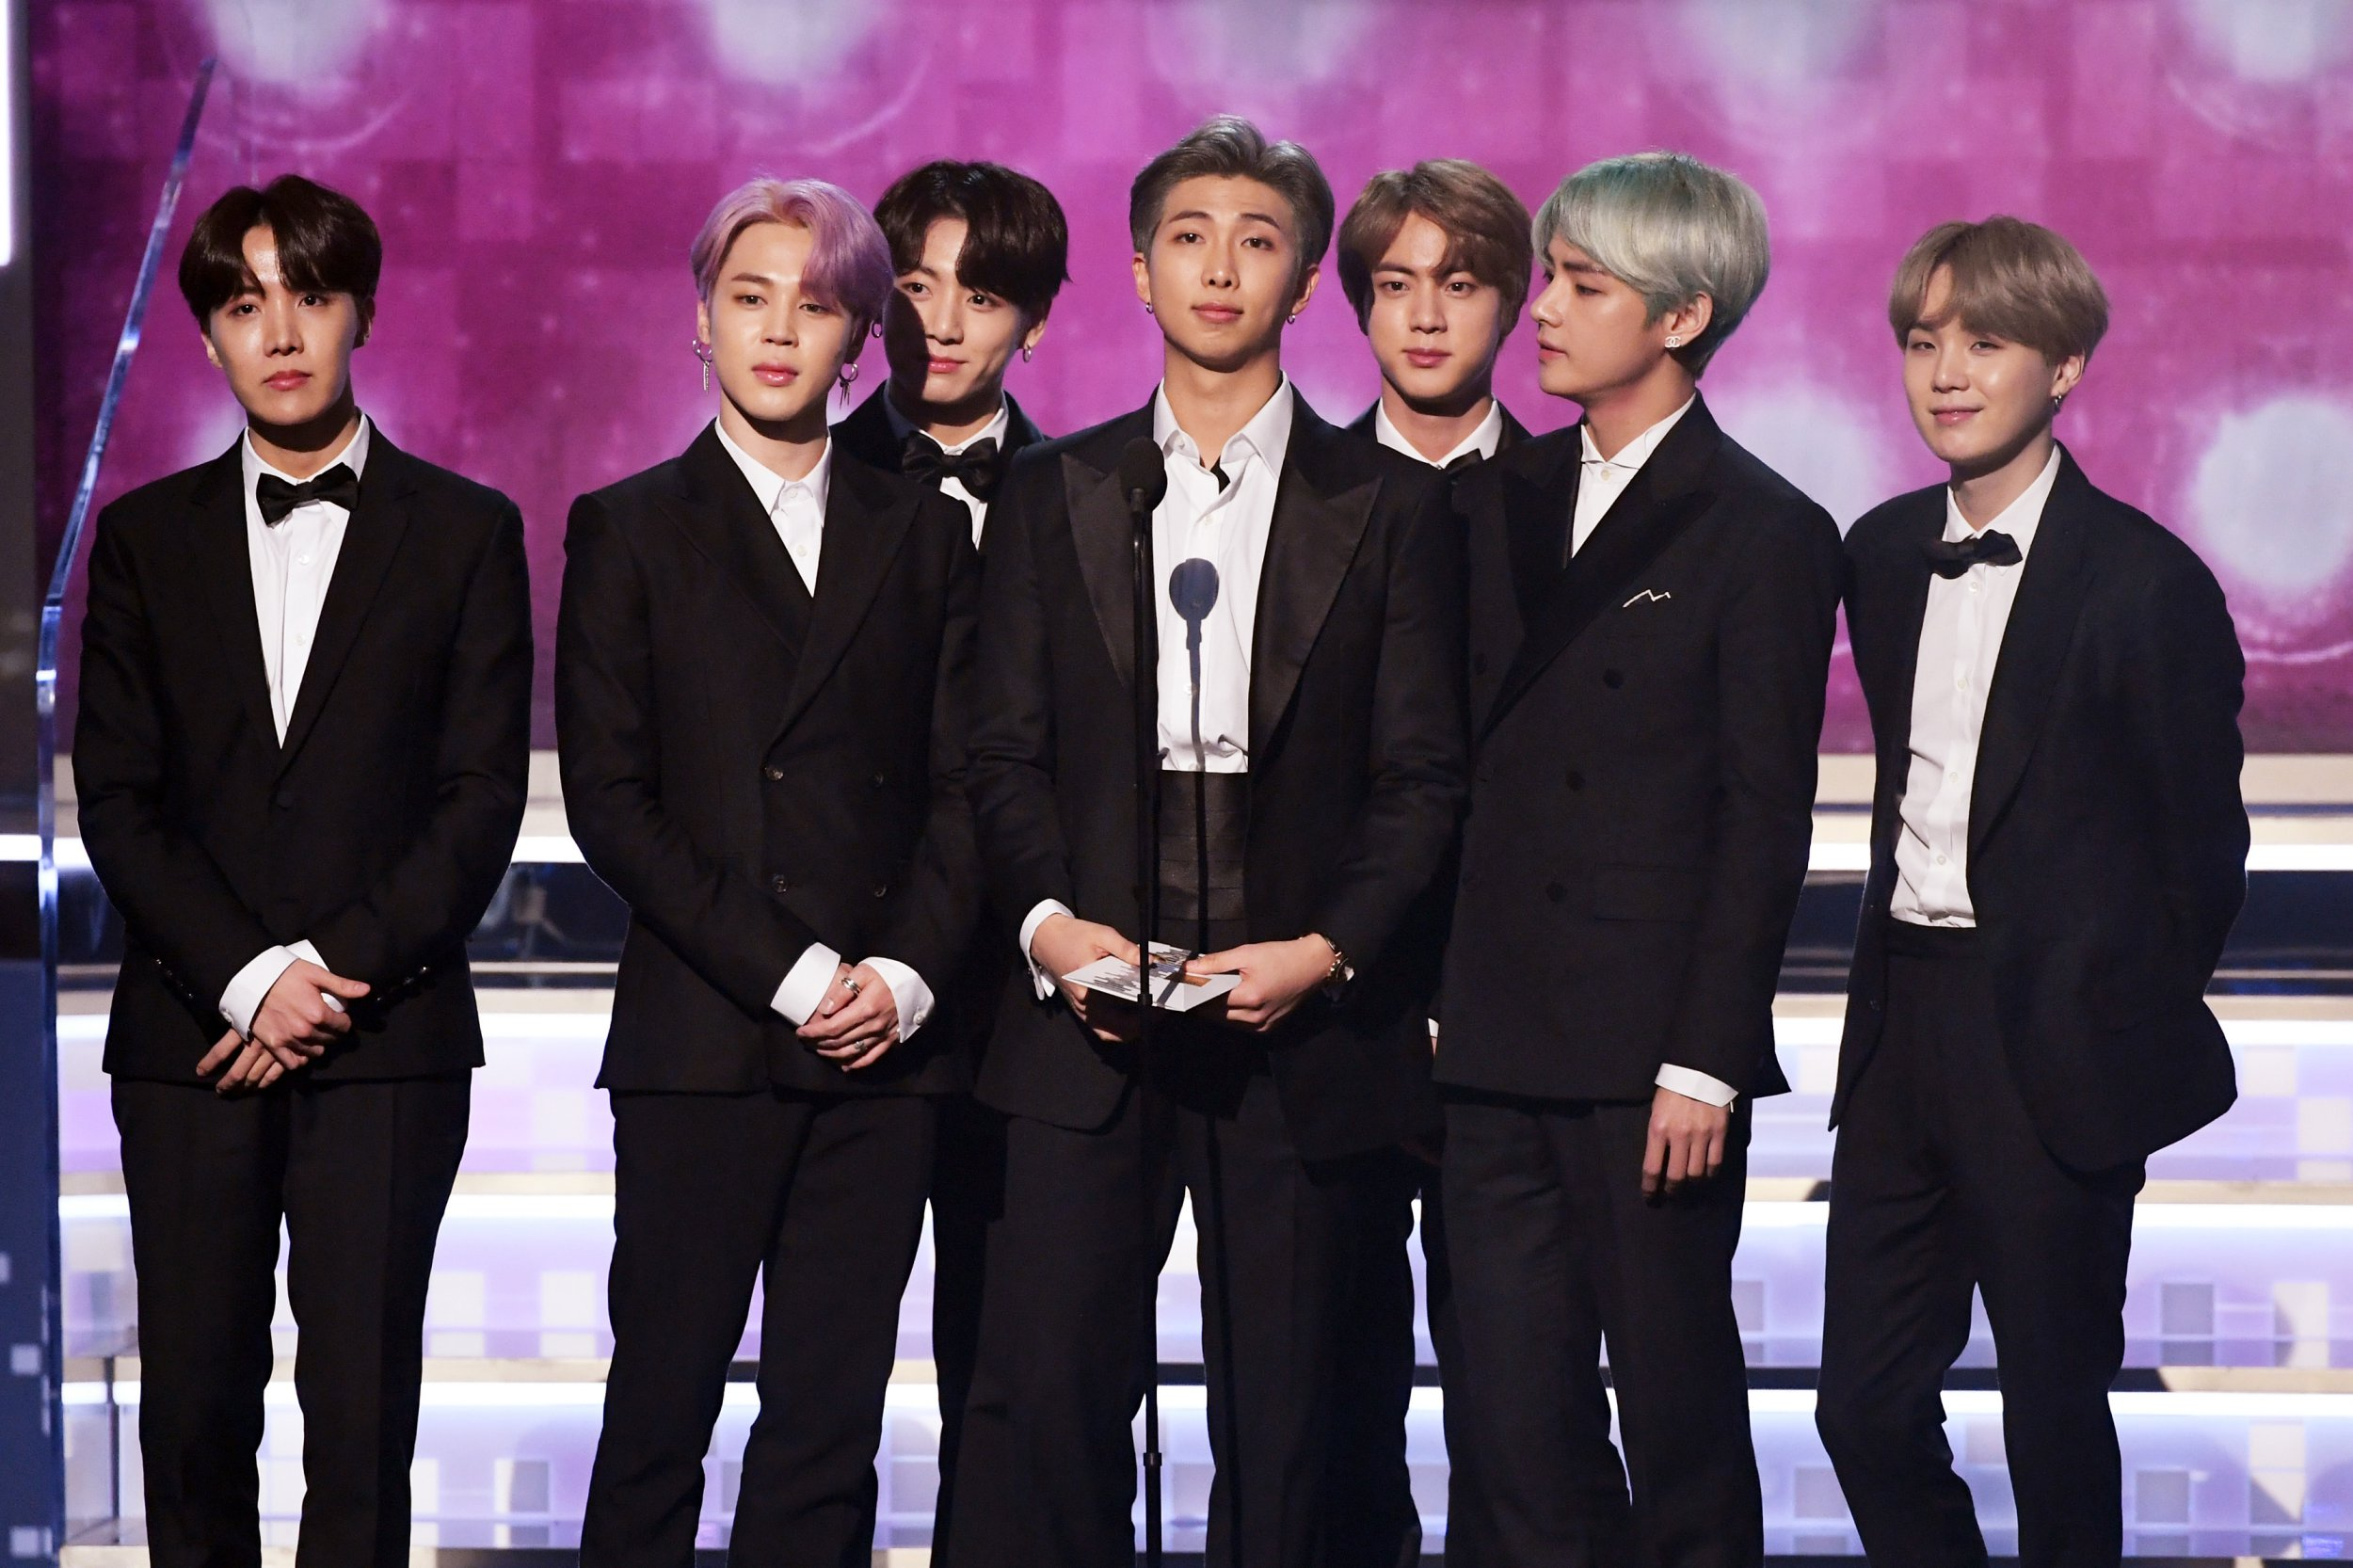 LOS ANGELES, CA - FEBRUARY 10: RM (C) and fellow BTS members speak onstage during the 61st Annual GRAMMY Awards at Staples Center on February 10, 2019 in Los Angeles, California. (Photo by Kevin Winter/Getty Images for The Recording Academy)